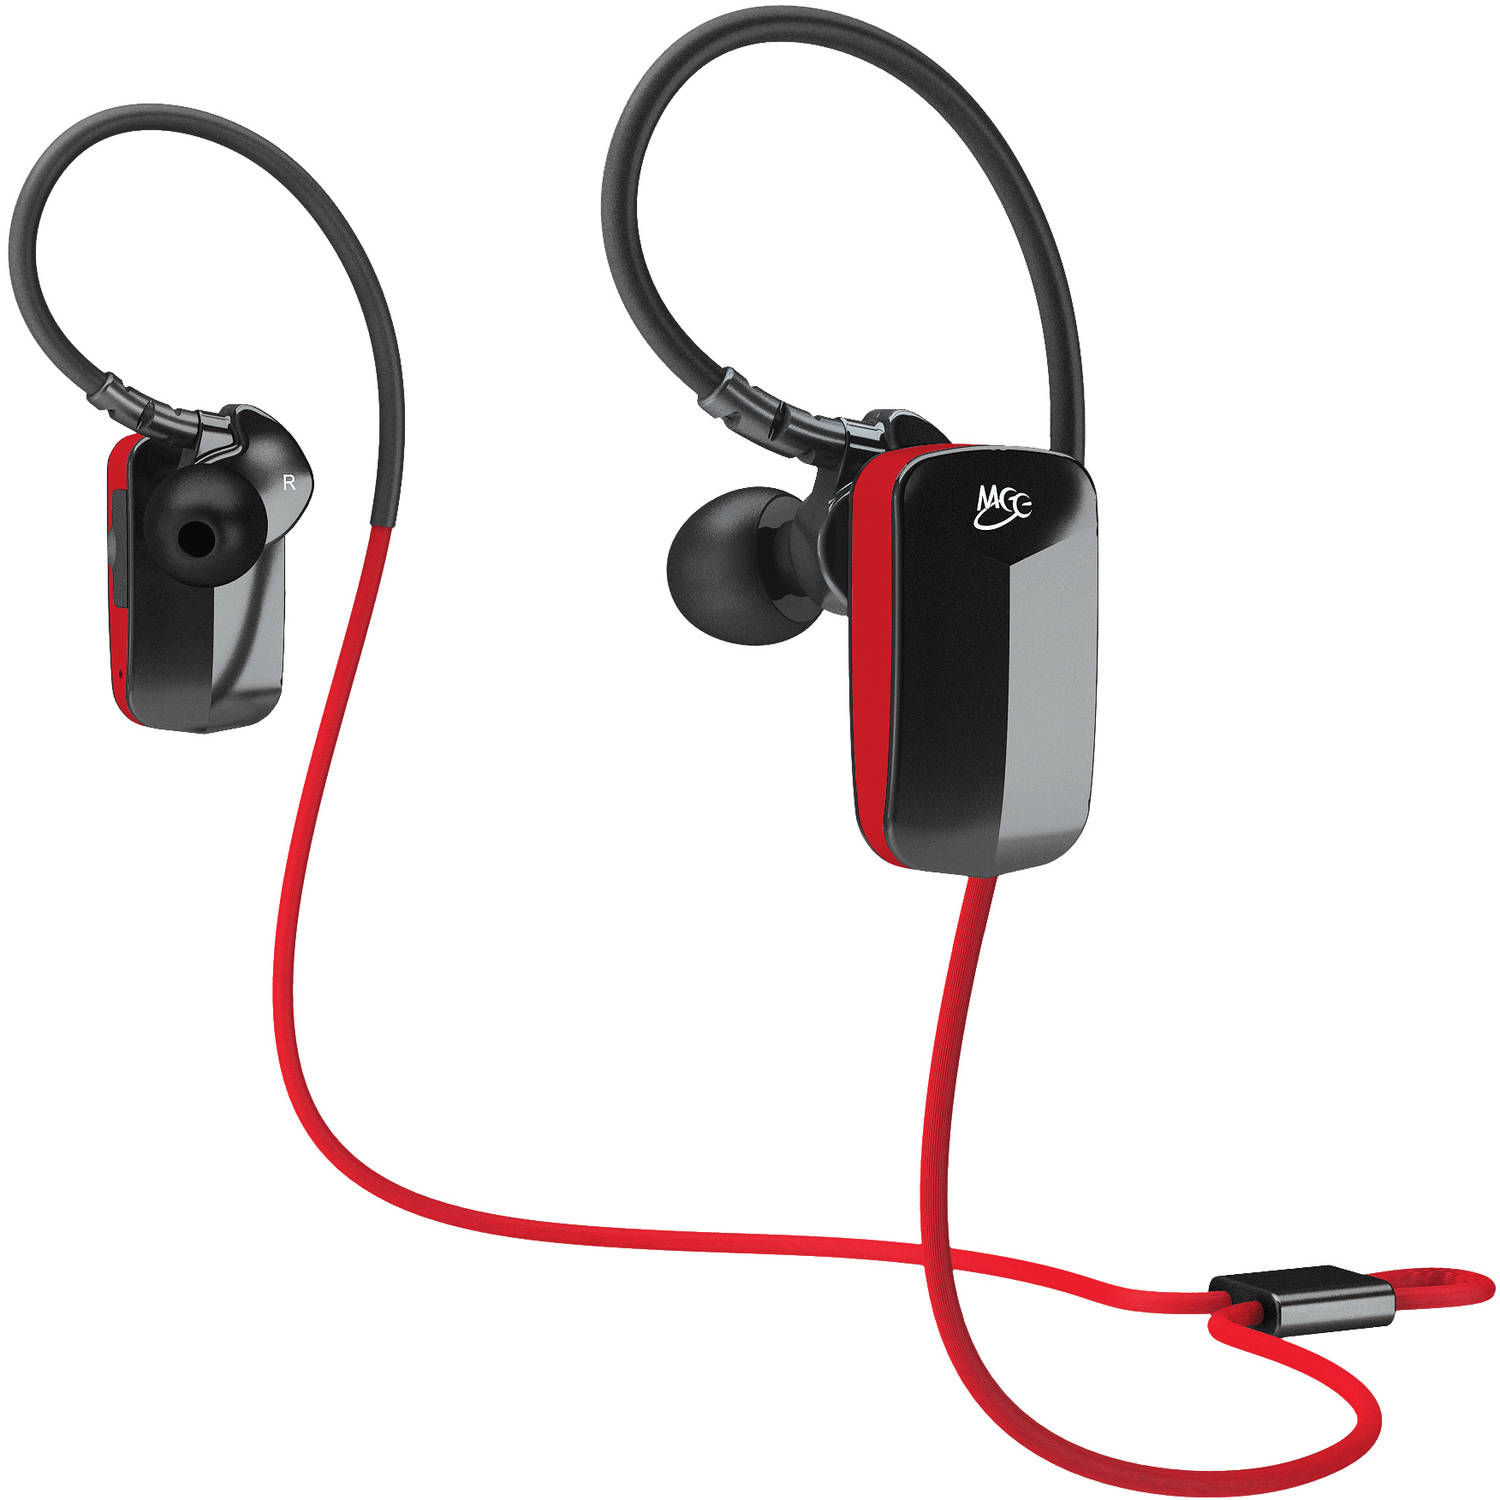 MEE audio Sport-Fi X6 Stereo Bluetooth Wireless Sports In-Ear Headphones